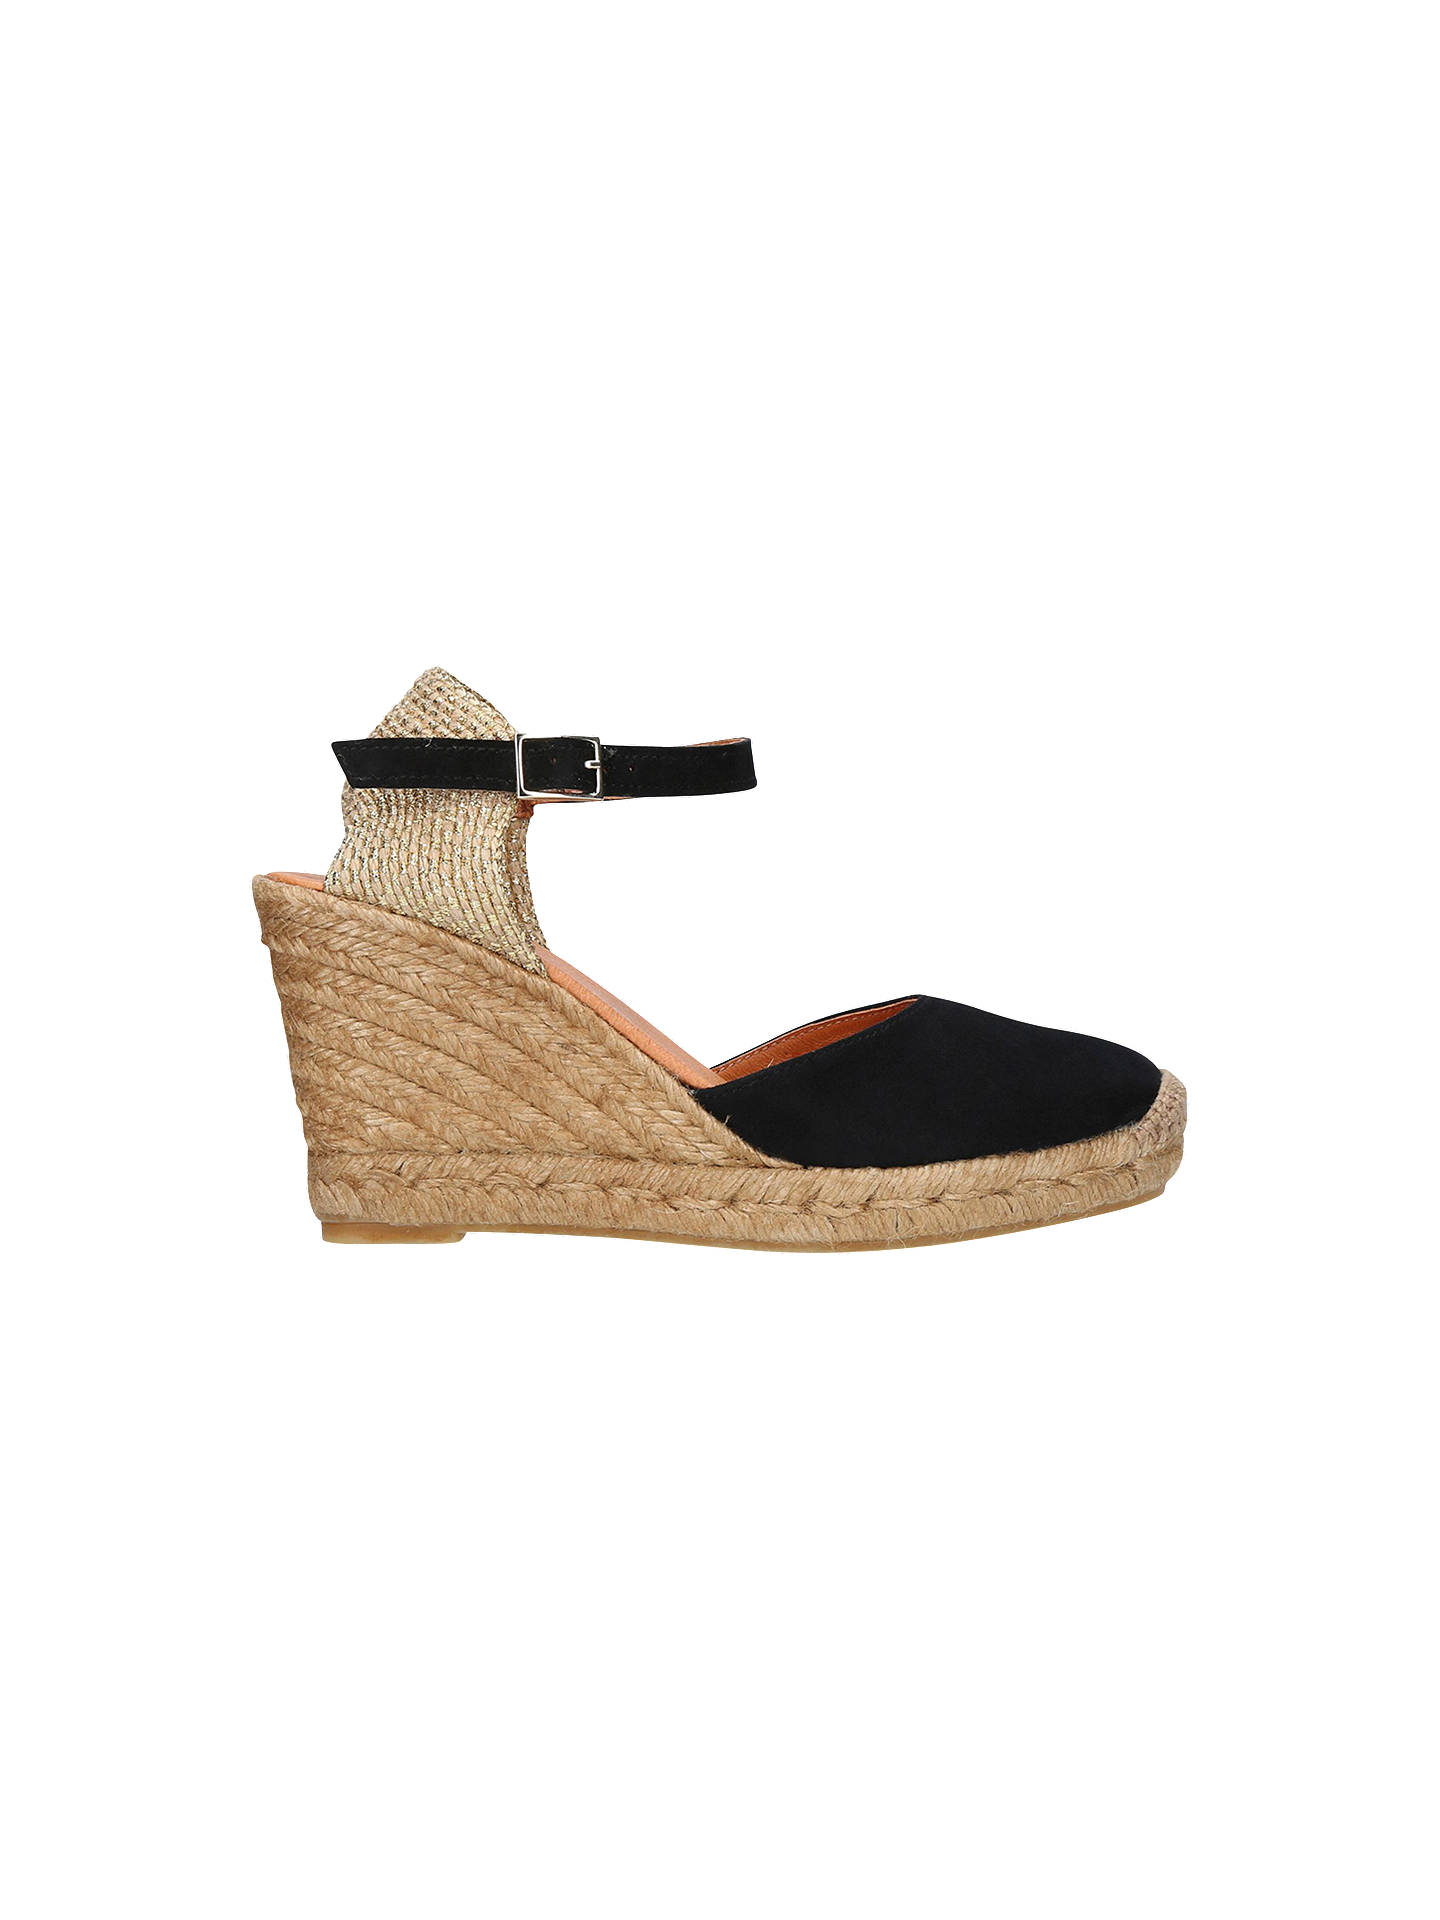 d7860be8a7d Kurt Geiger London Monty Wedge Heel Espadrilles, Black Suede at John ...